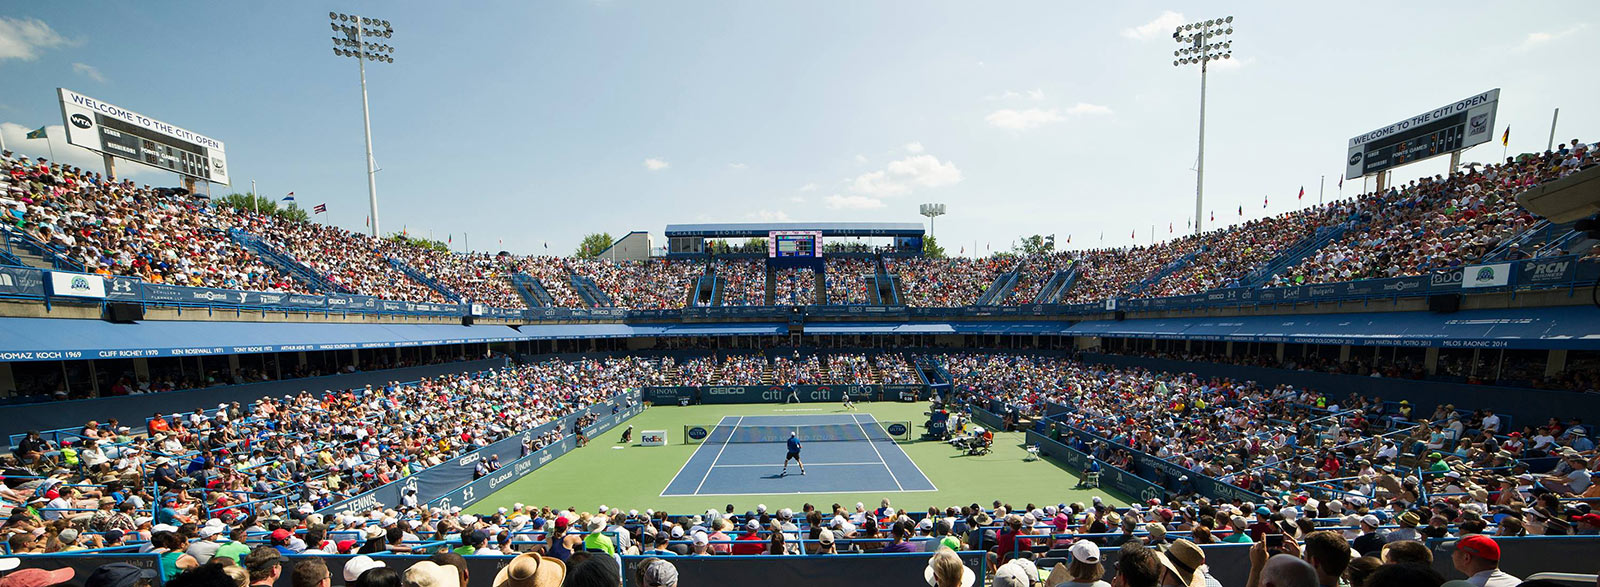 Citi Open - Sporting Events in Washington, DC